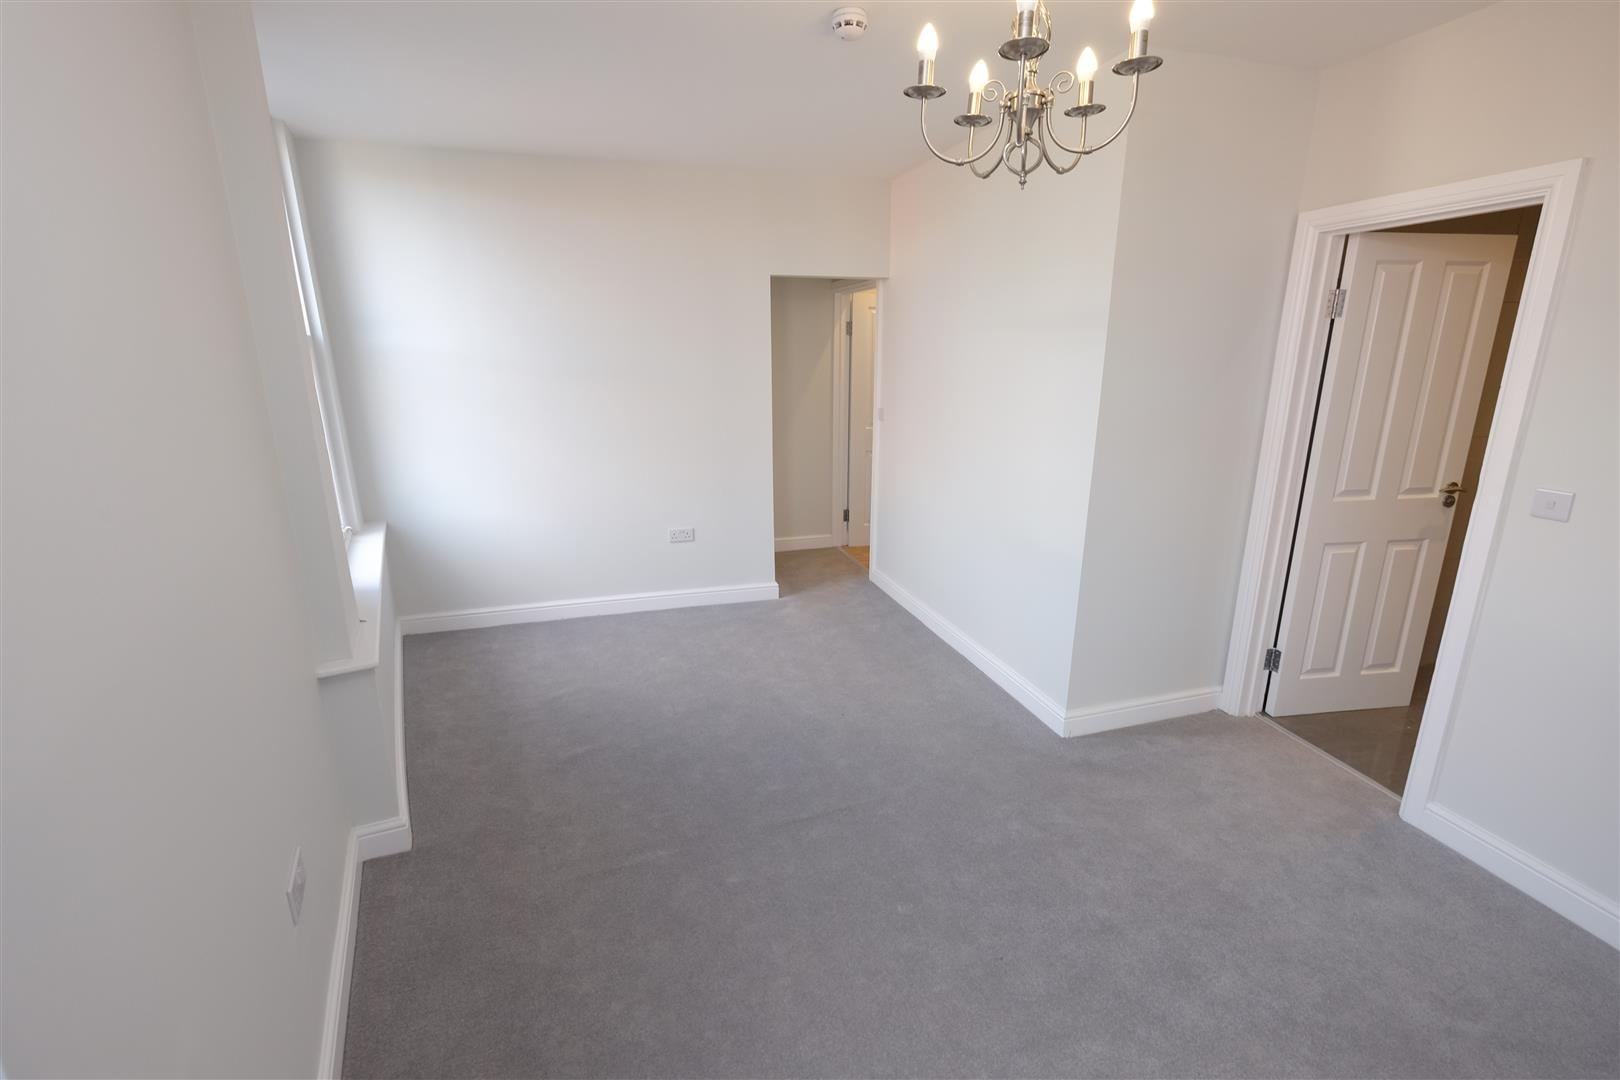 Images for RENOVATED 1 BED - REDUCED PRICE FOR AUCTION EAID:hollismoapi BID:11